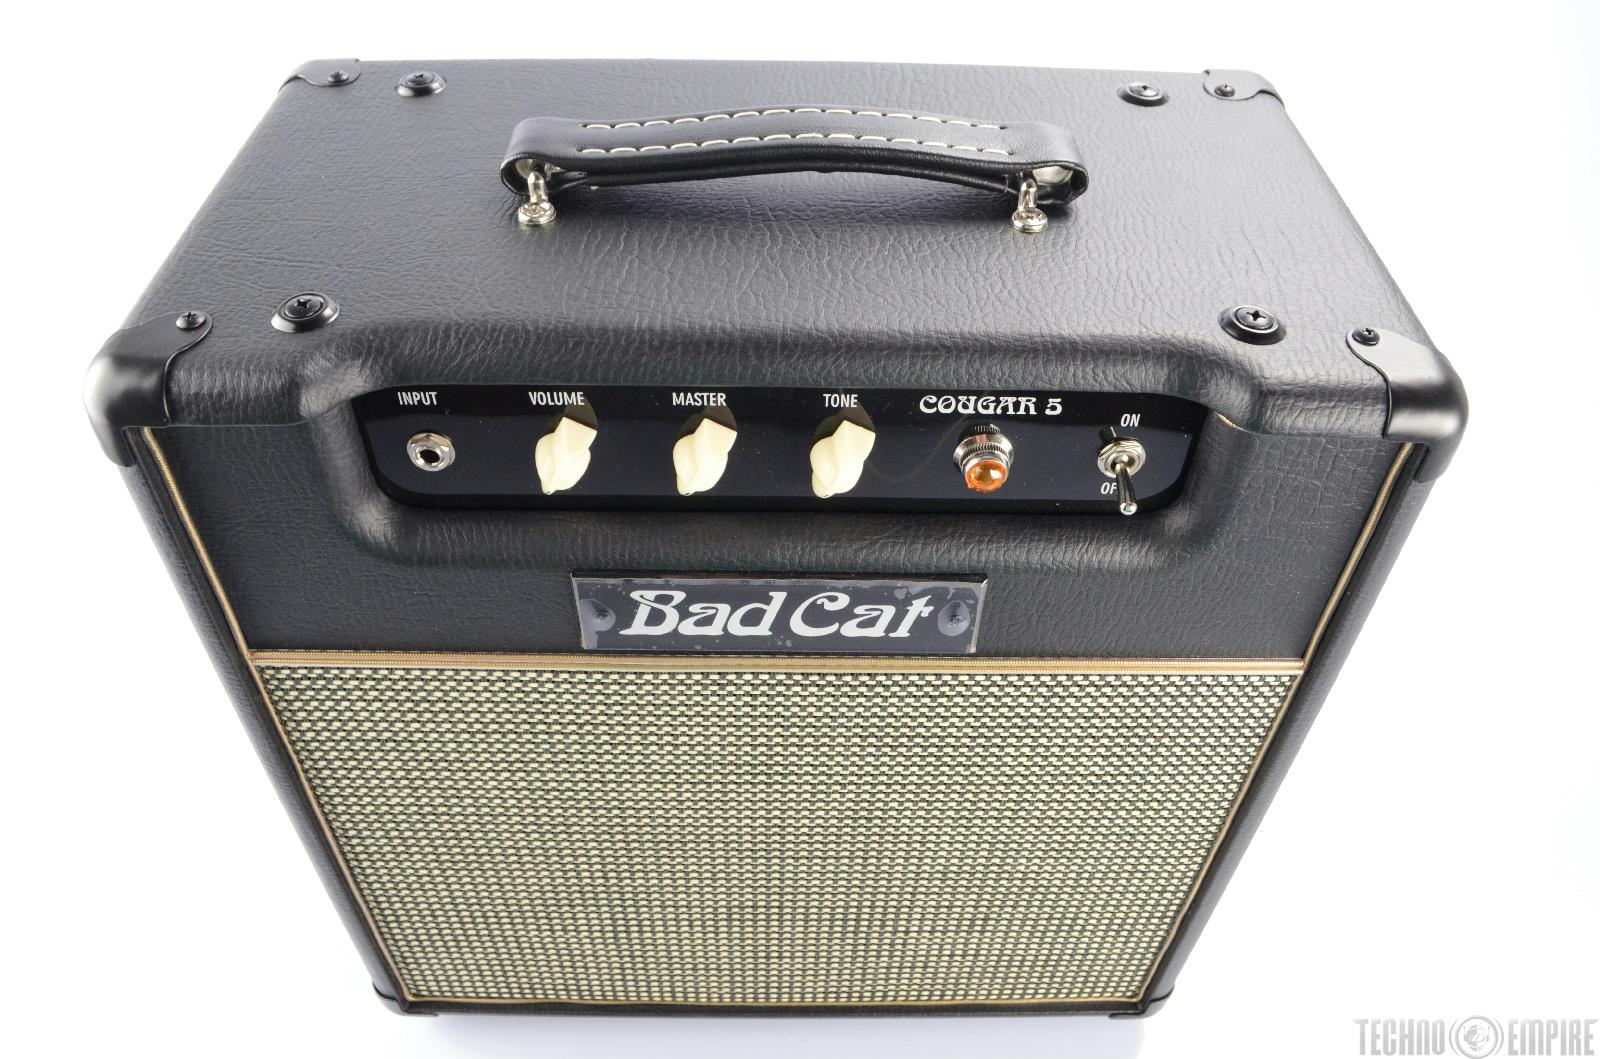 bad cat cougar 5 class a 5w all tube guitar combo amp 1x12 amplifier new 21836 ebay. Black Bedroom Furniture Sets. Home Design Ideas